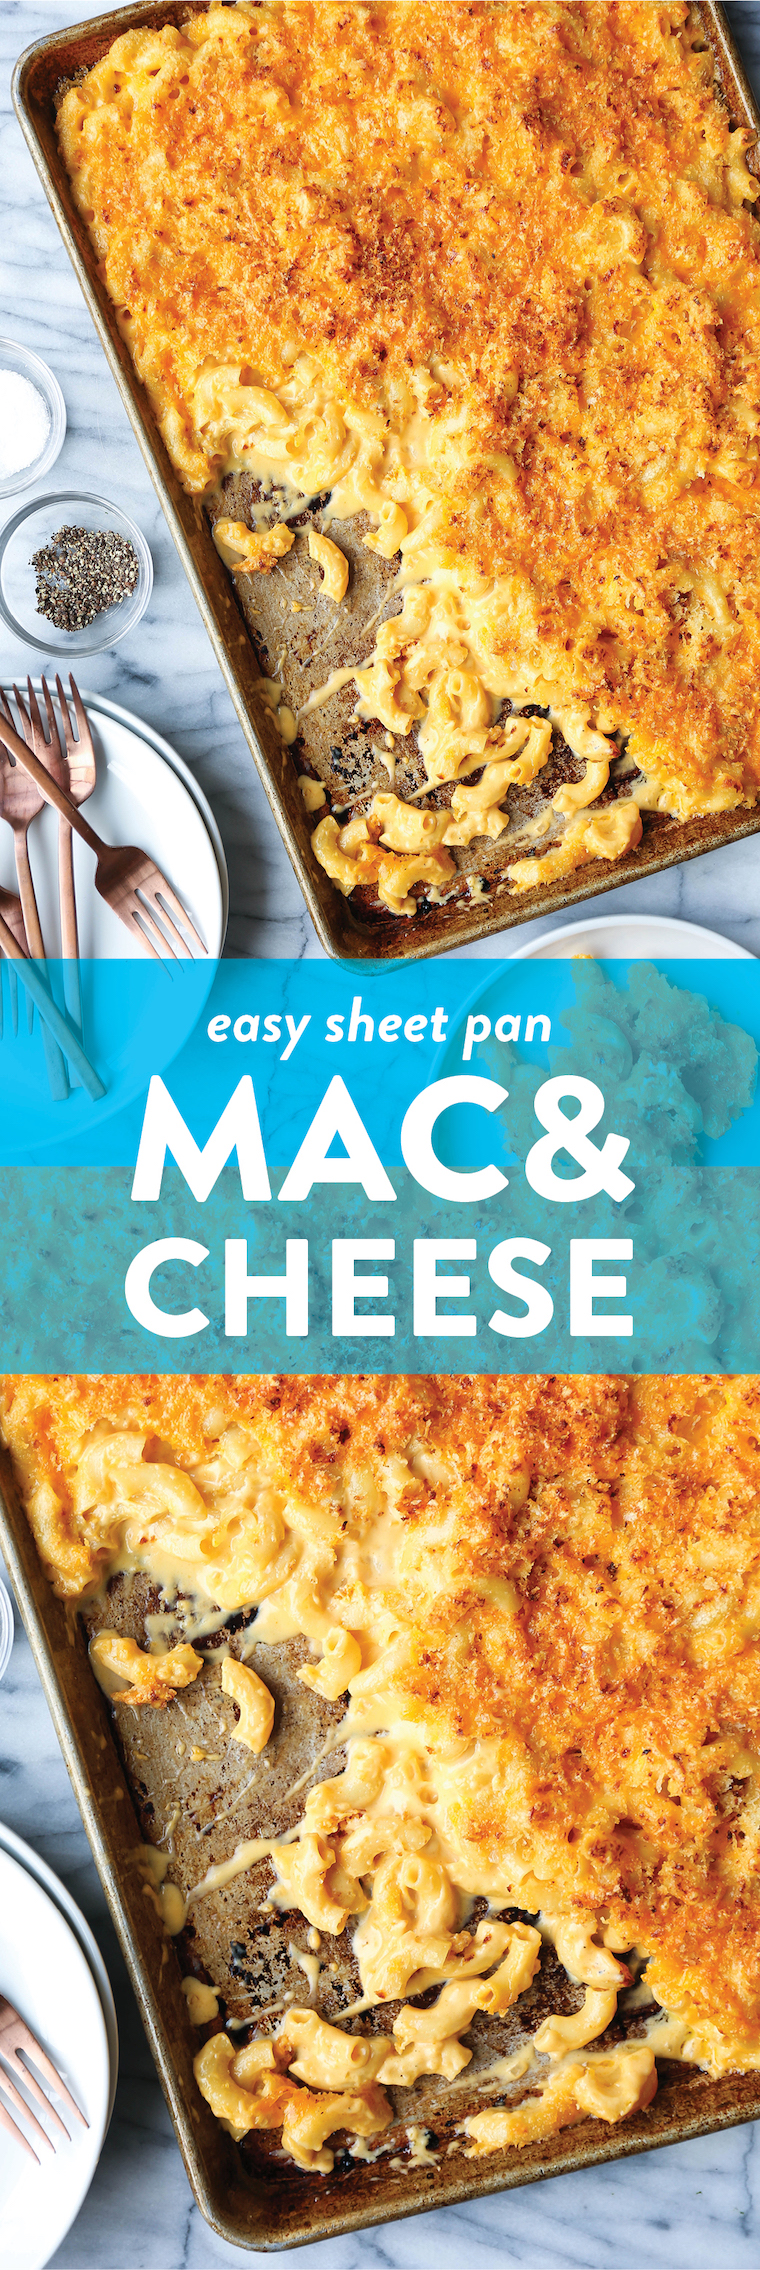 Sheet Pan Mac and Cheese - Crowd-pleasing mac and cheese made on a sheet pan! Perfectly cheesy + creamy with the maximum amount of crunchy bits. MIND BLOWN.